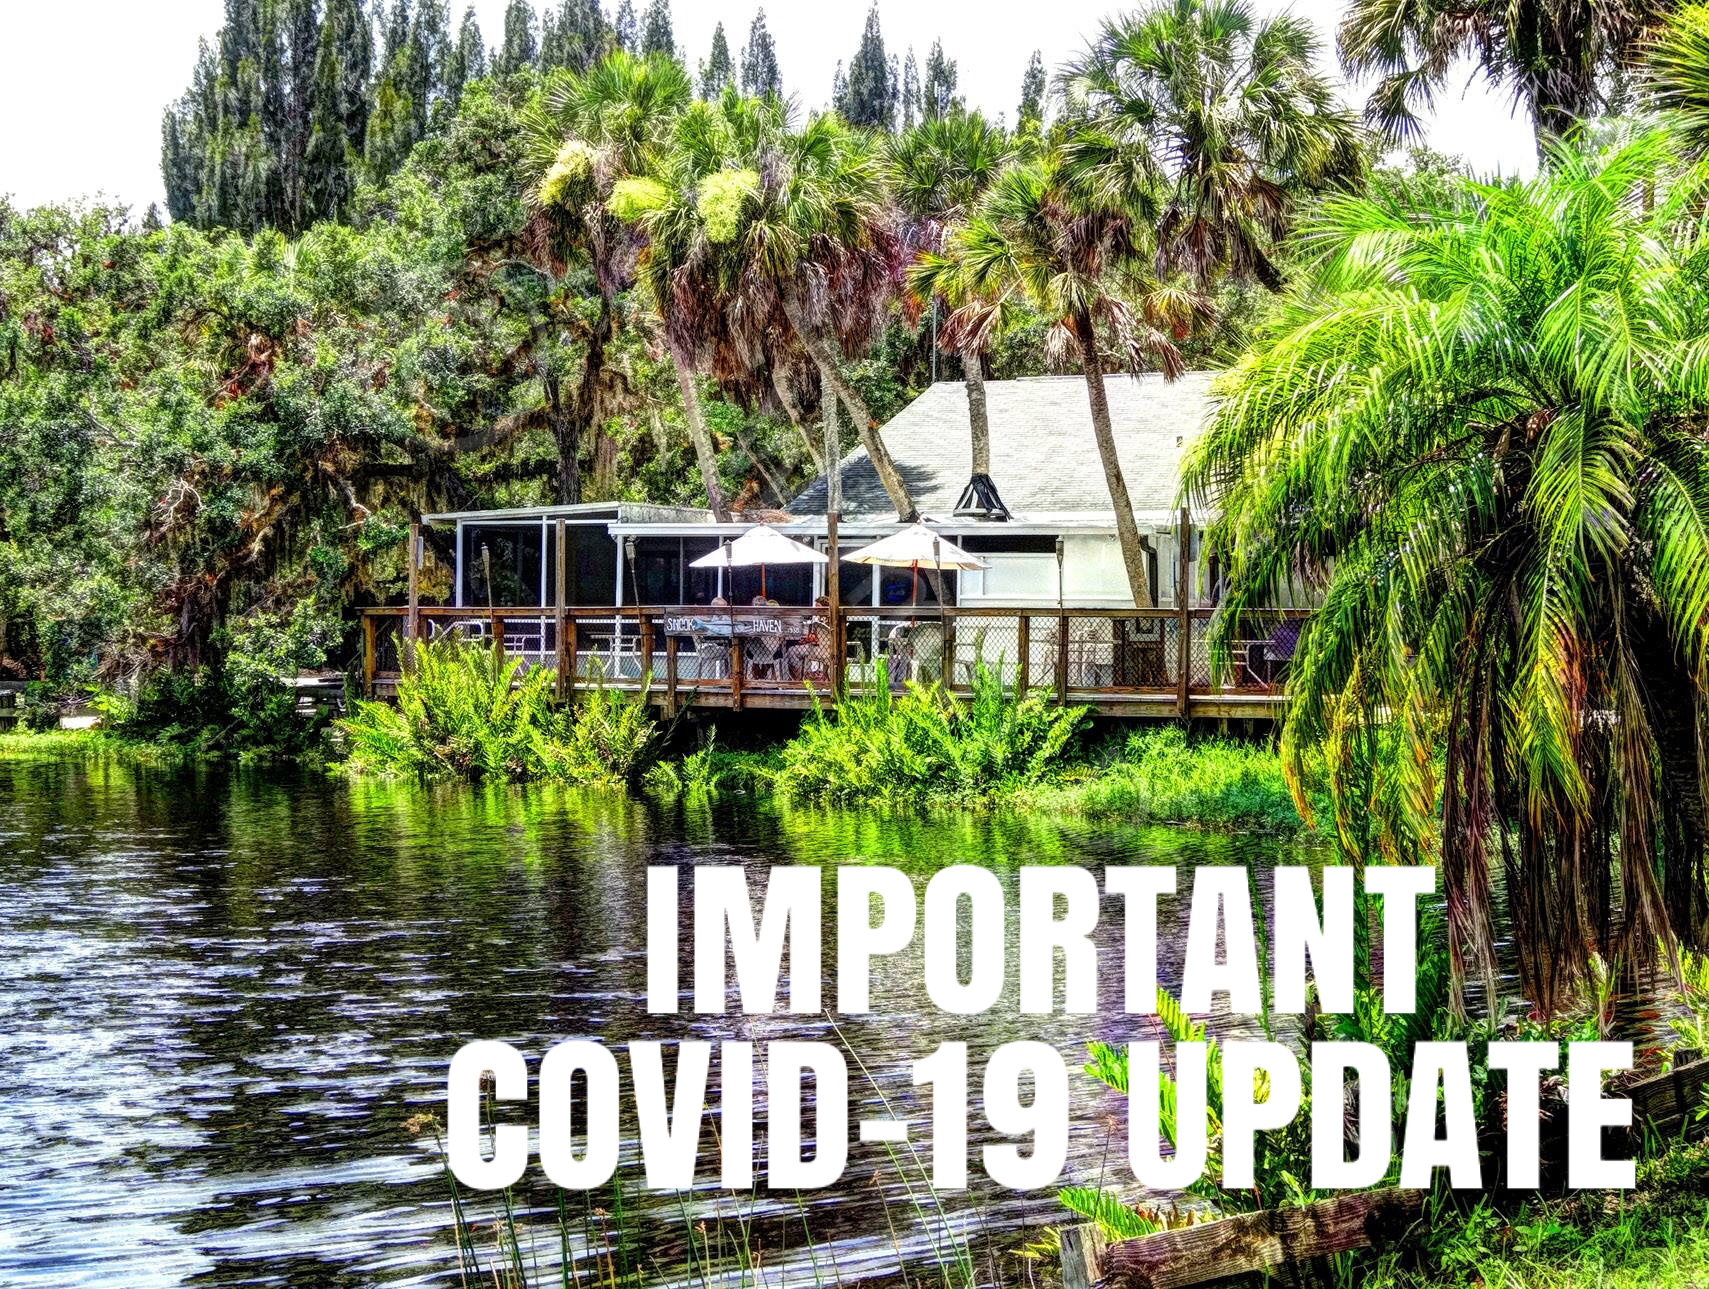 Important COVID-19 Update